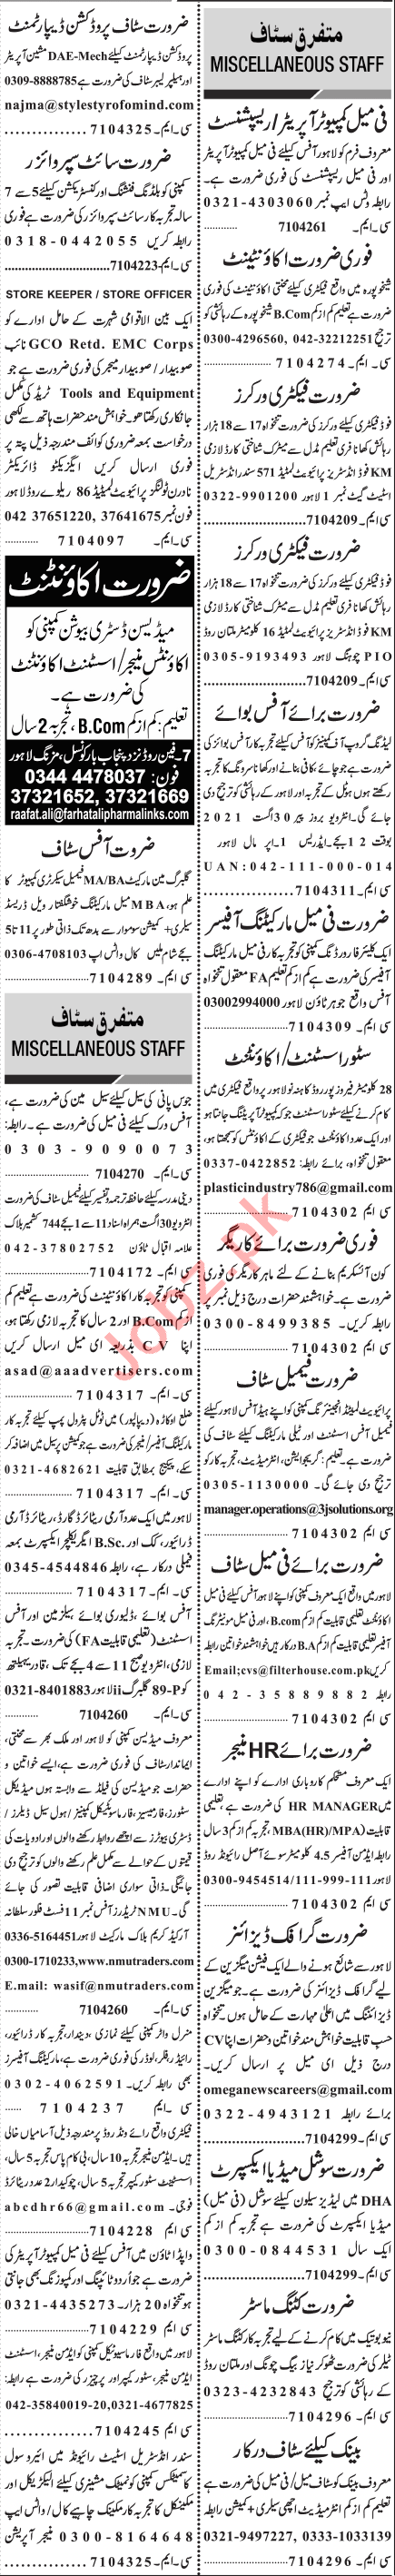 Jang Sunday Classified Ads 19 Sep 2021 for Office Staff